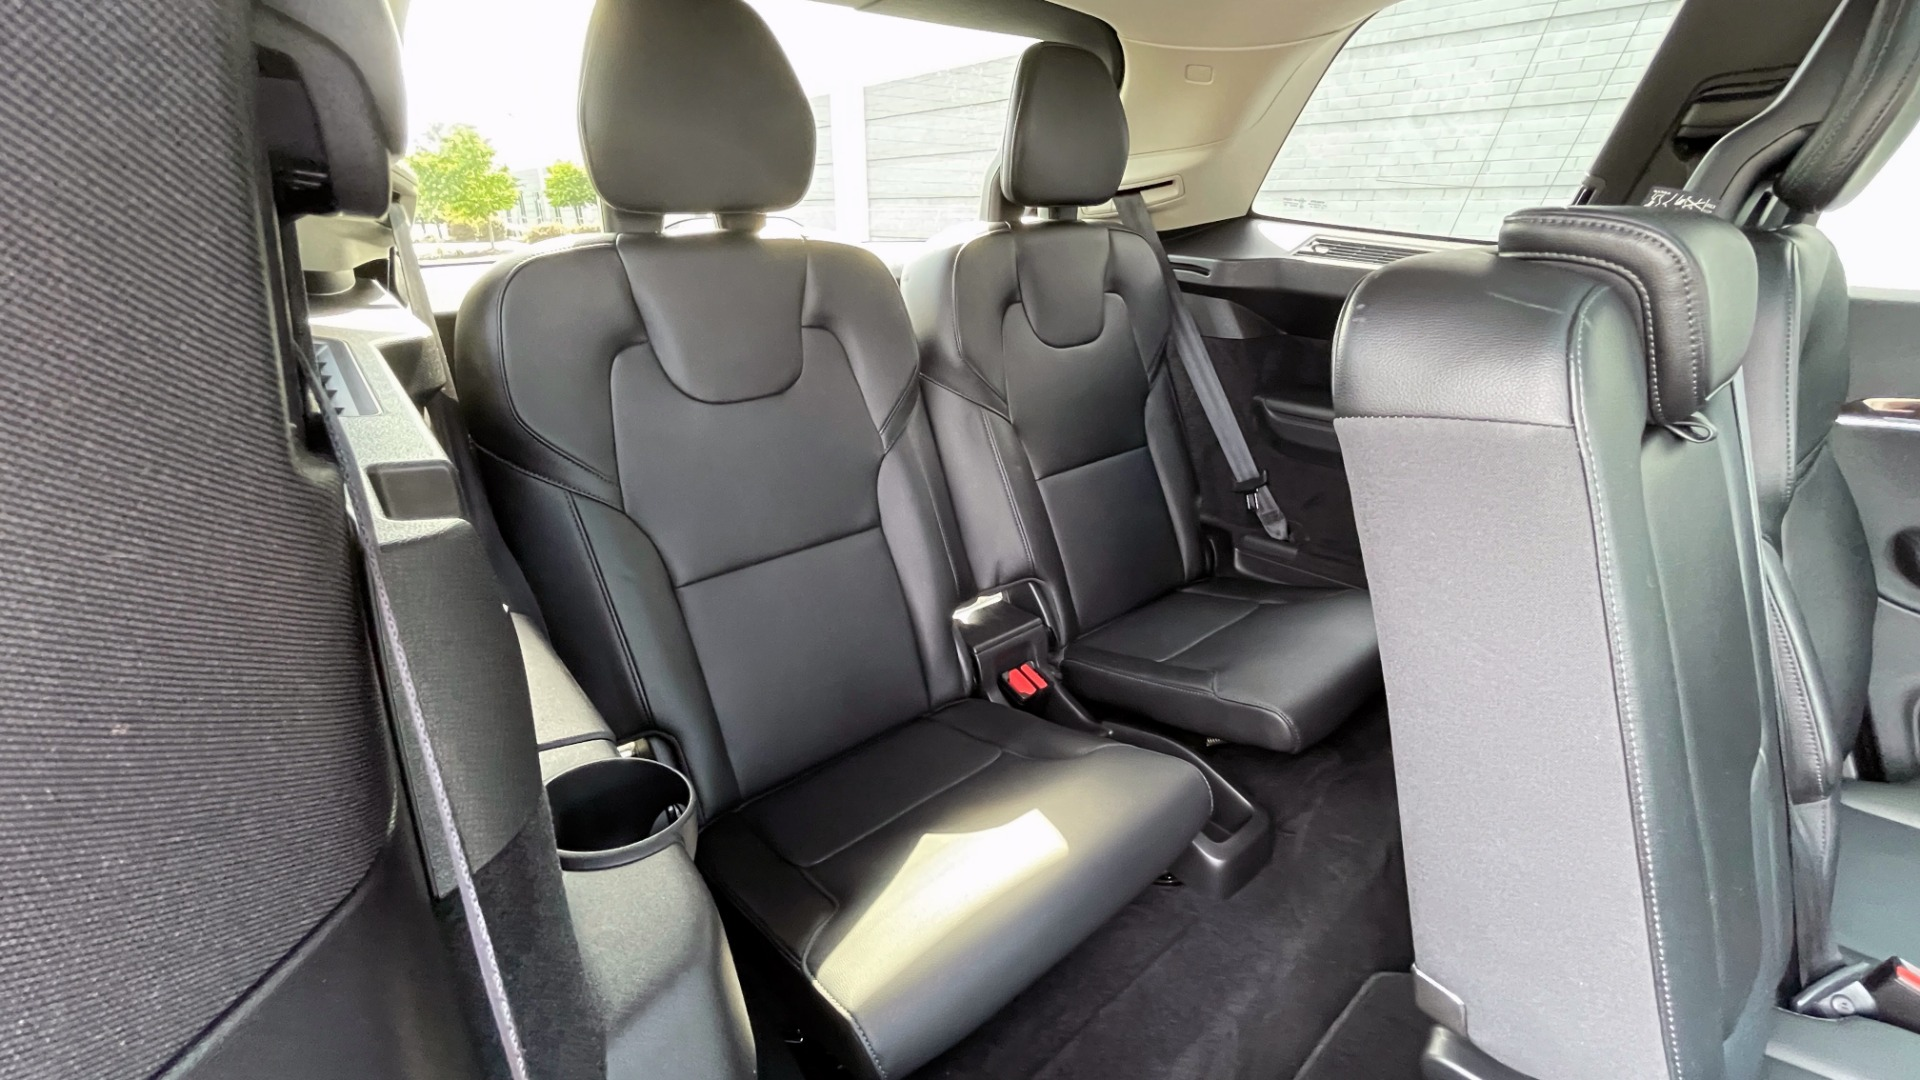 Used 2018 Volvo XC90 T5 AWD MOMENTUM PLUS / NAV / SUNROOF / 3-ROW / REARVIEW for sale $40,295 at Formula Imports in Charlotte NC 28227 77